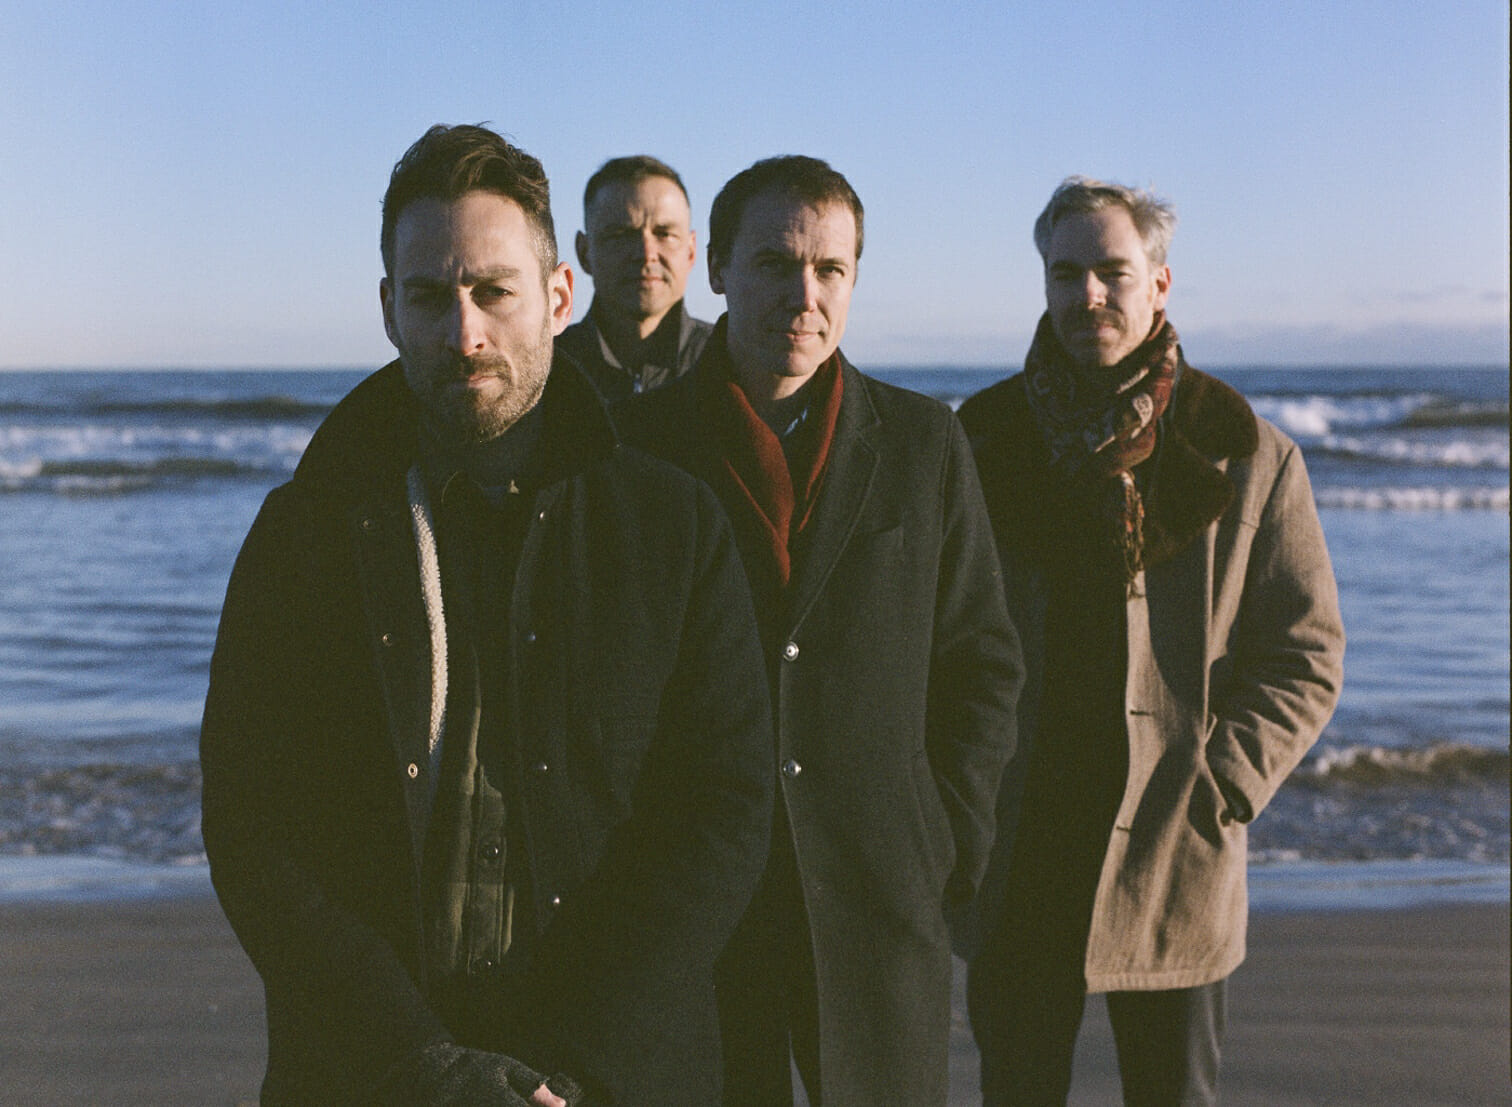 American Football's 'LP3' is a welcome departure from the past, years in the making